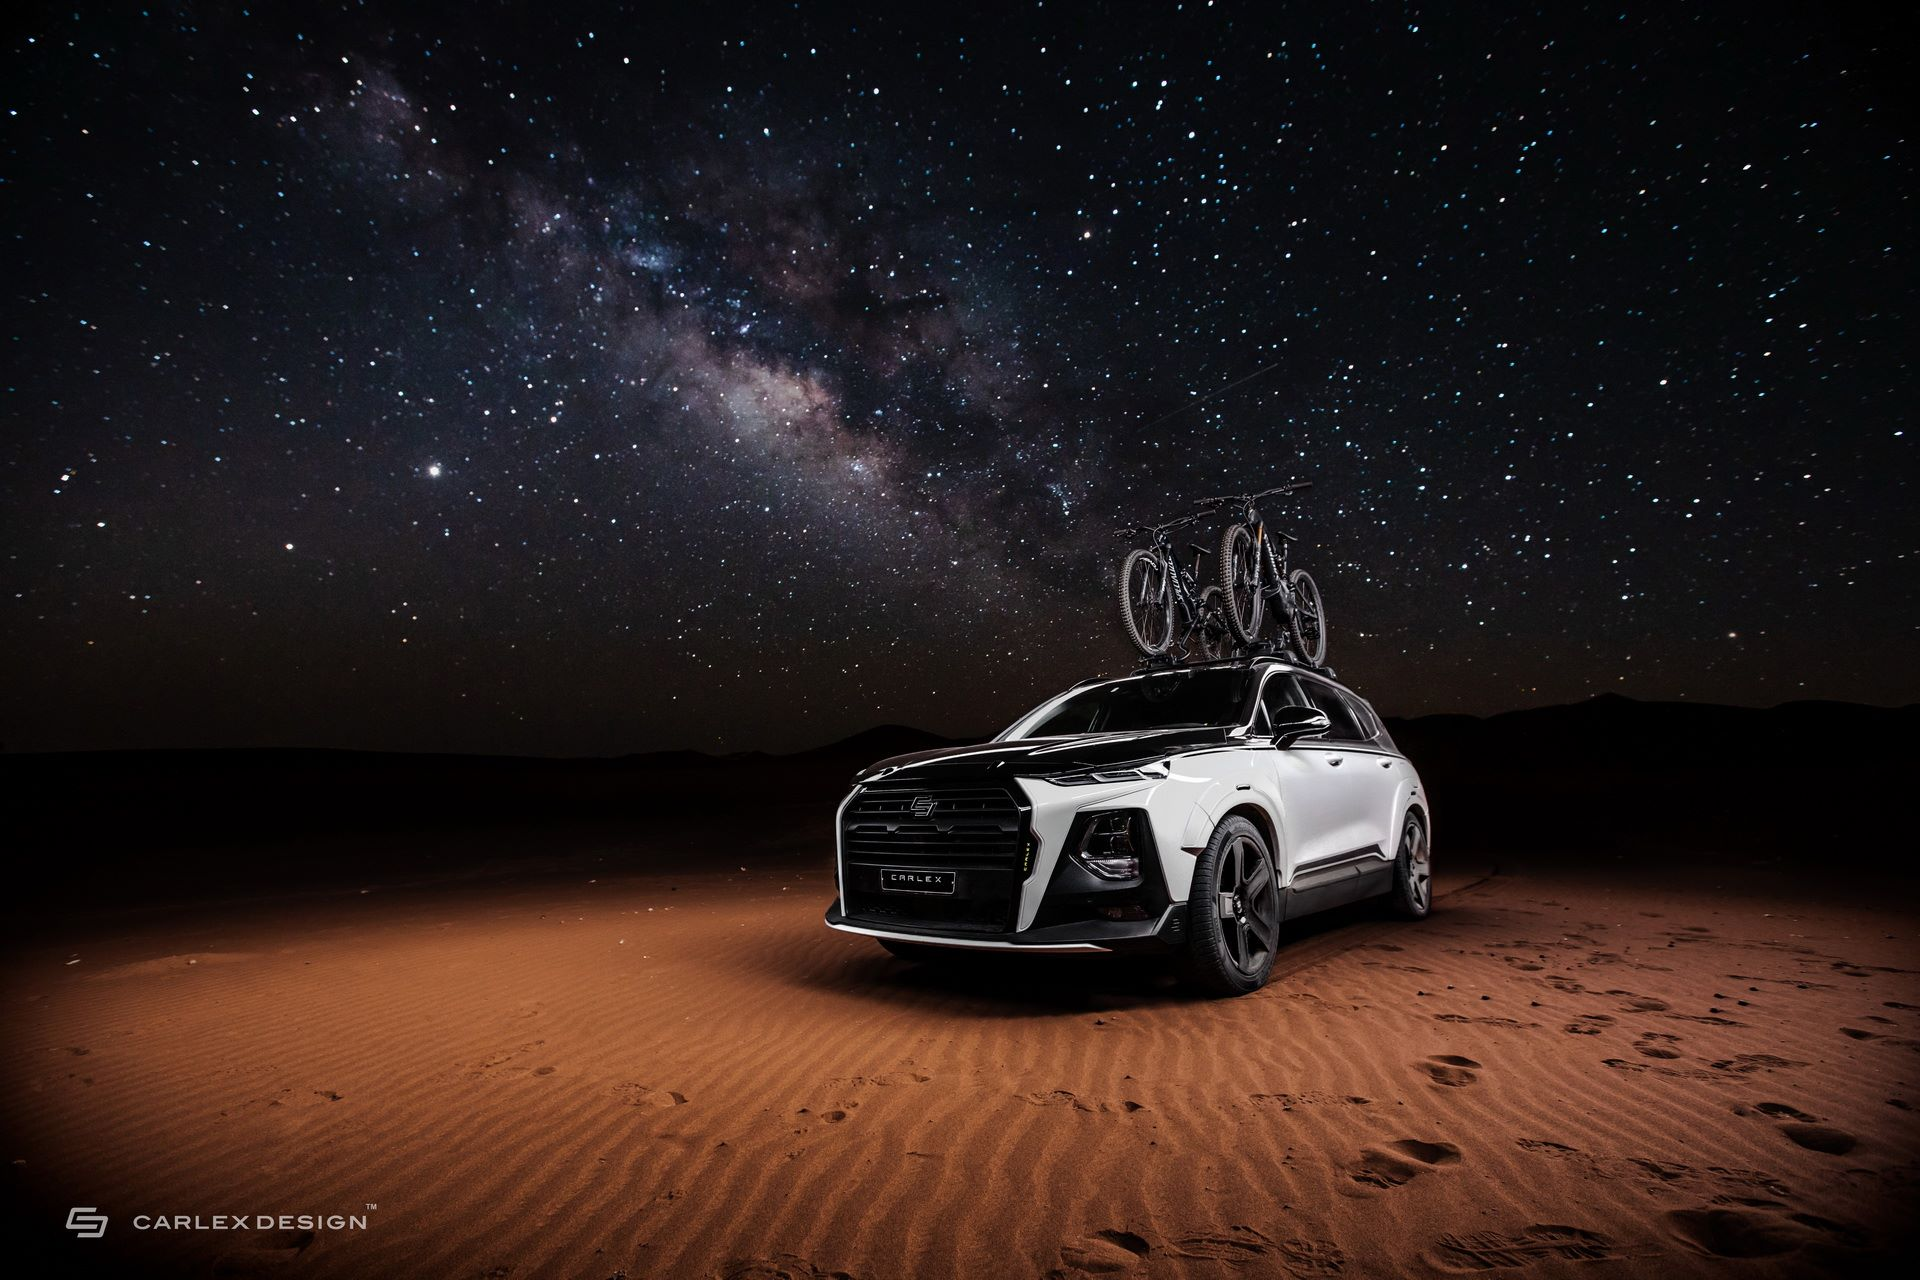 Hyundai-Santa-Fe-Urban-Edition-by-Carlex-Design-1